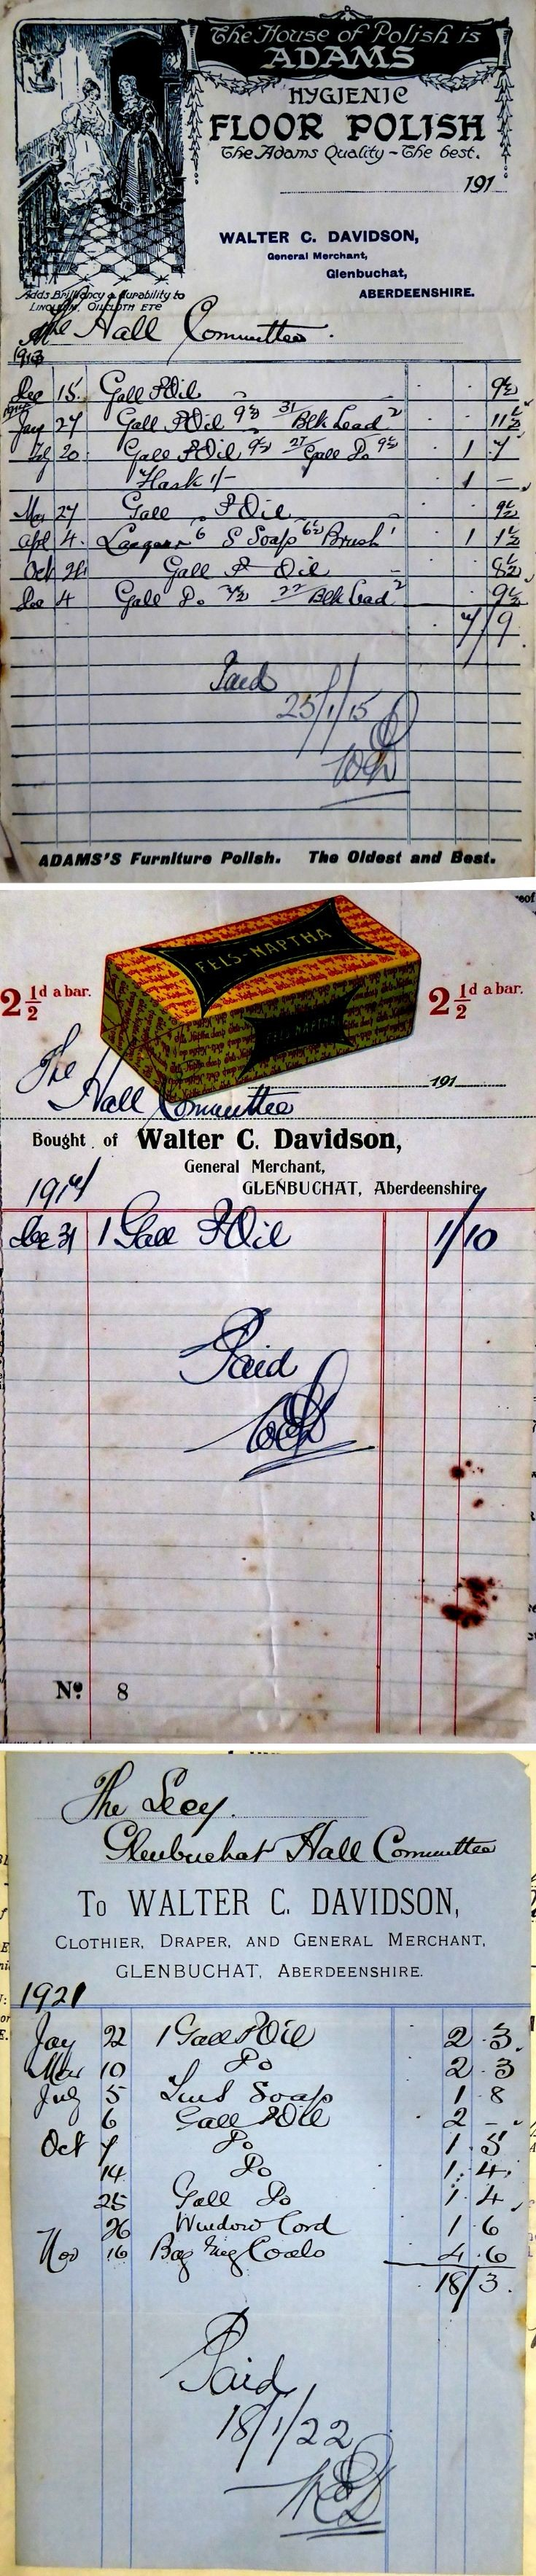 44 Invoices for Hall from Walter Davidson